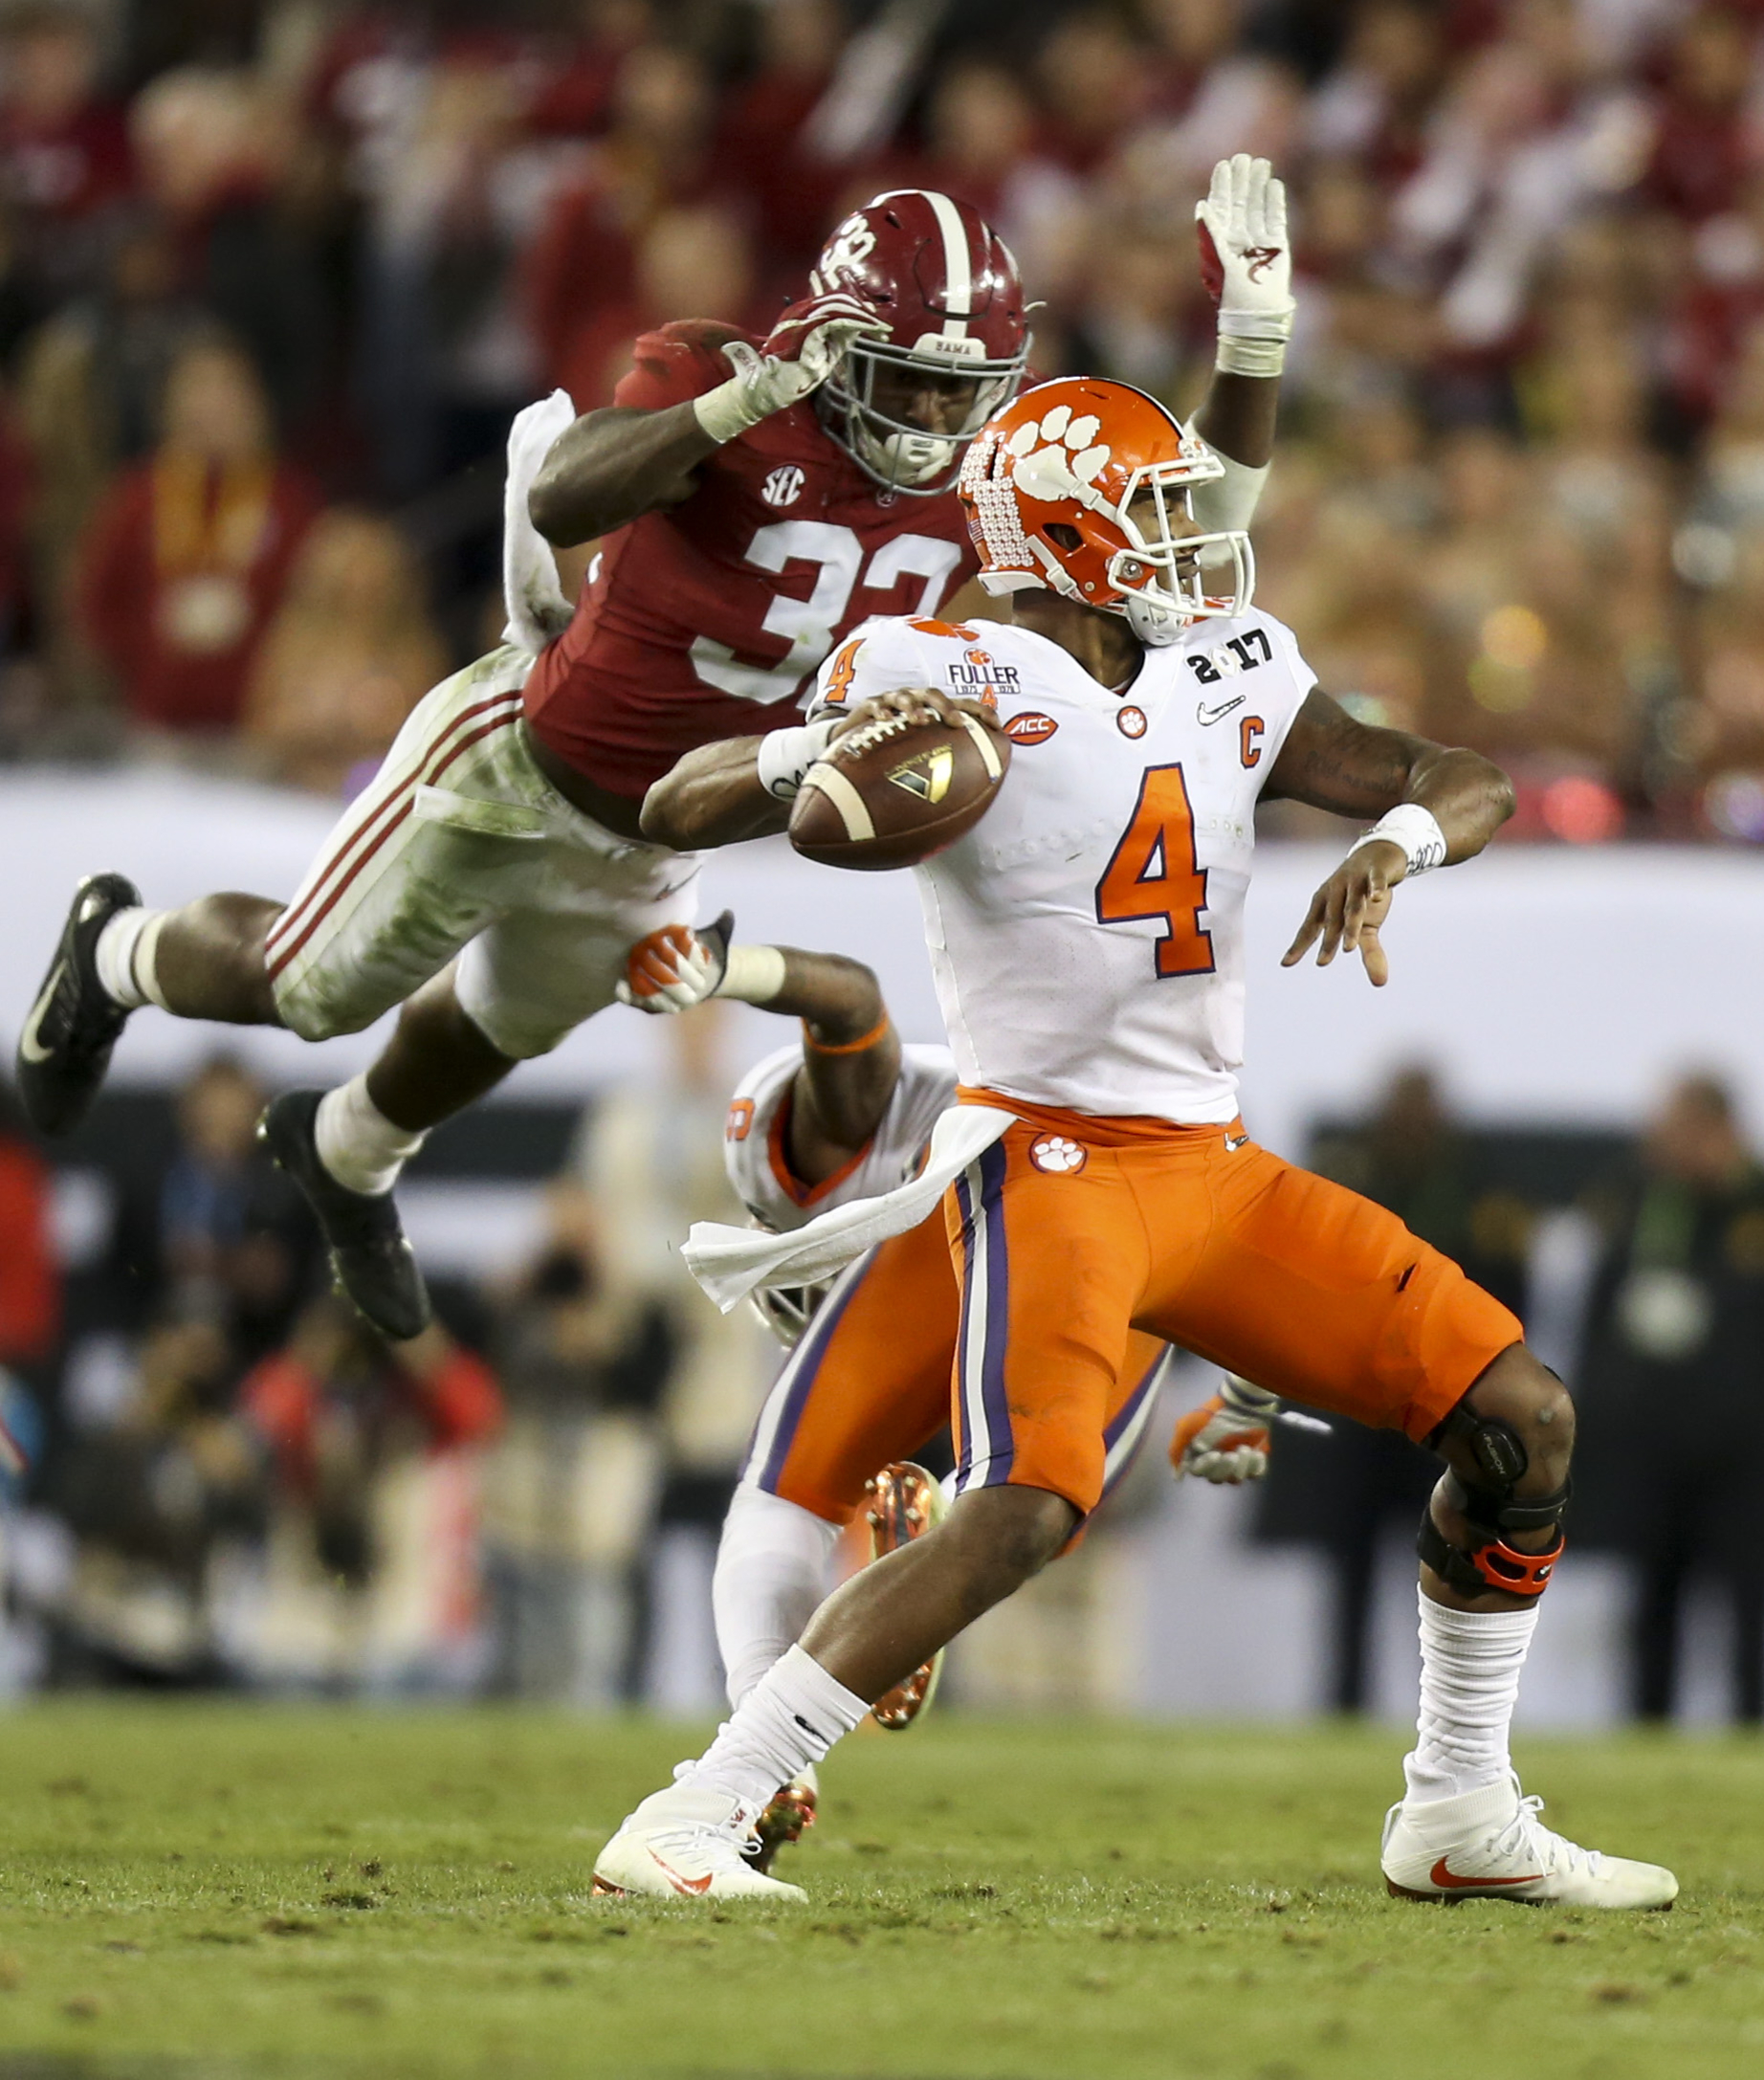 Clemson Tigers quarterback Deshaun Watson (4) prepares to throw the ball as Alabama Crimson Tide linebacker Rashaan Evans (32) leaps to tackle Watson during the second half of the College Football Playoff National Championship game Monday, Jan. 09, 2017 in Tampa. The Clemson Tigers defeated the Alabama Crimson Tide 35-31.